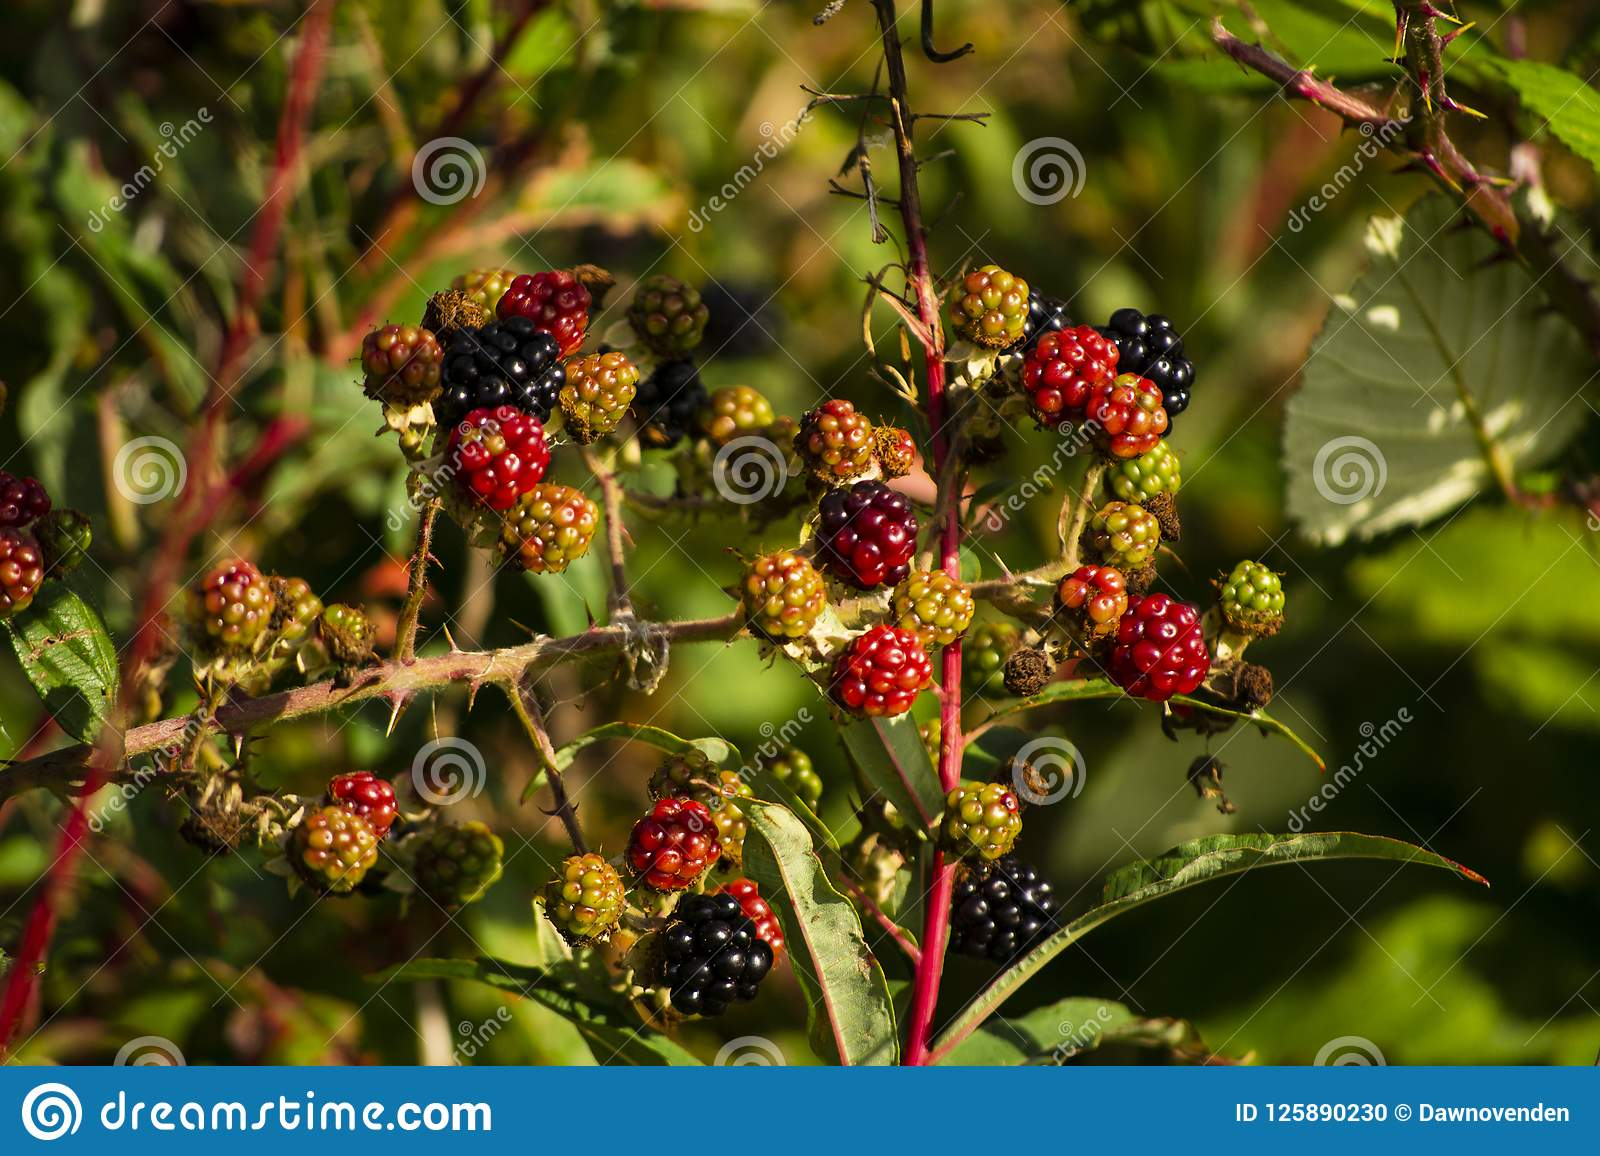 Close up of blackberries on the bush